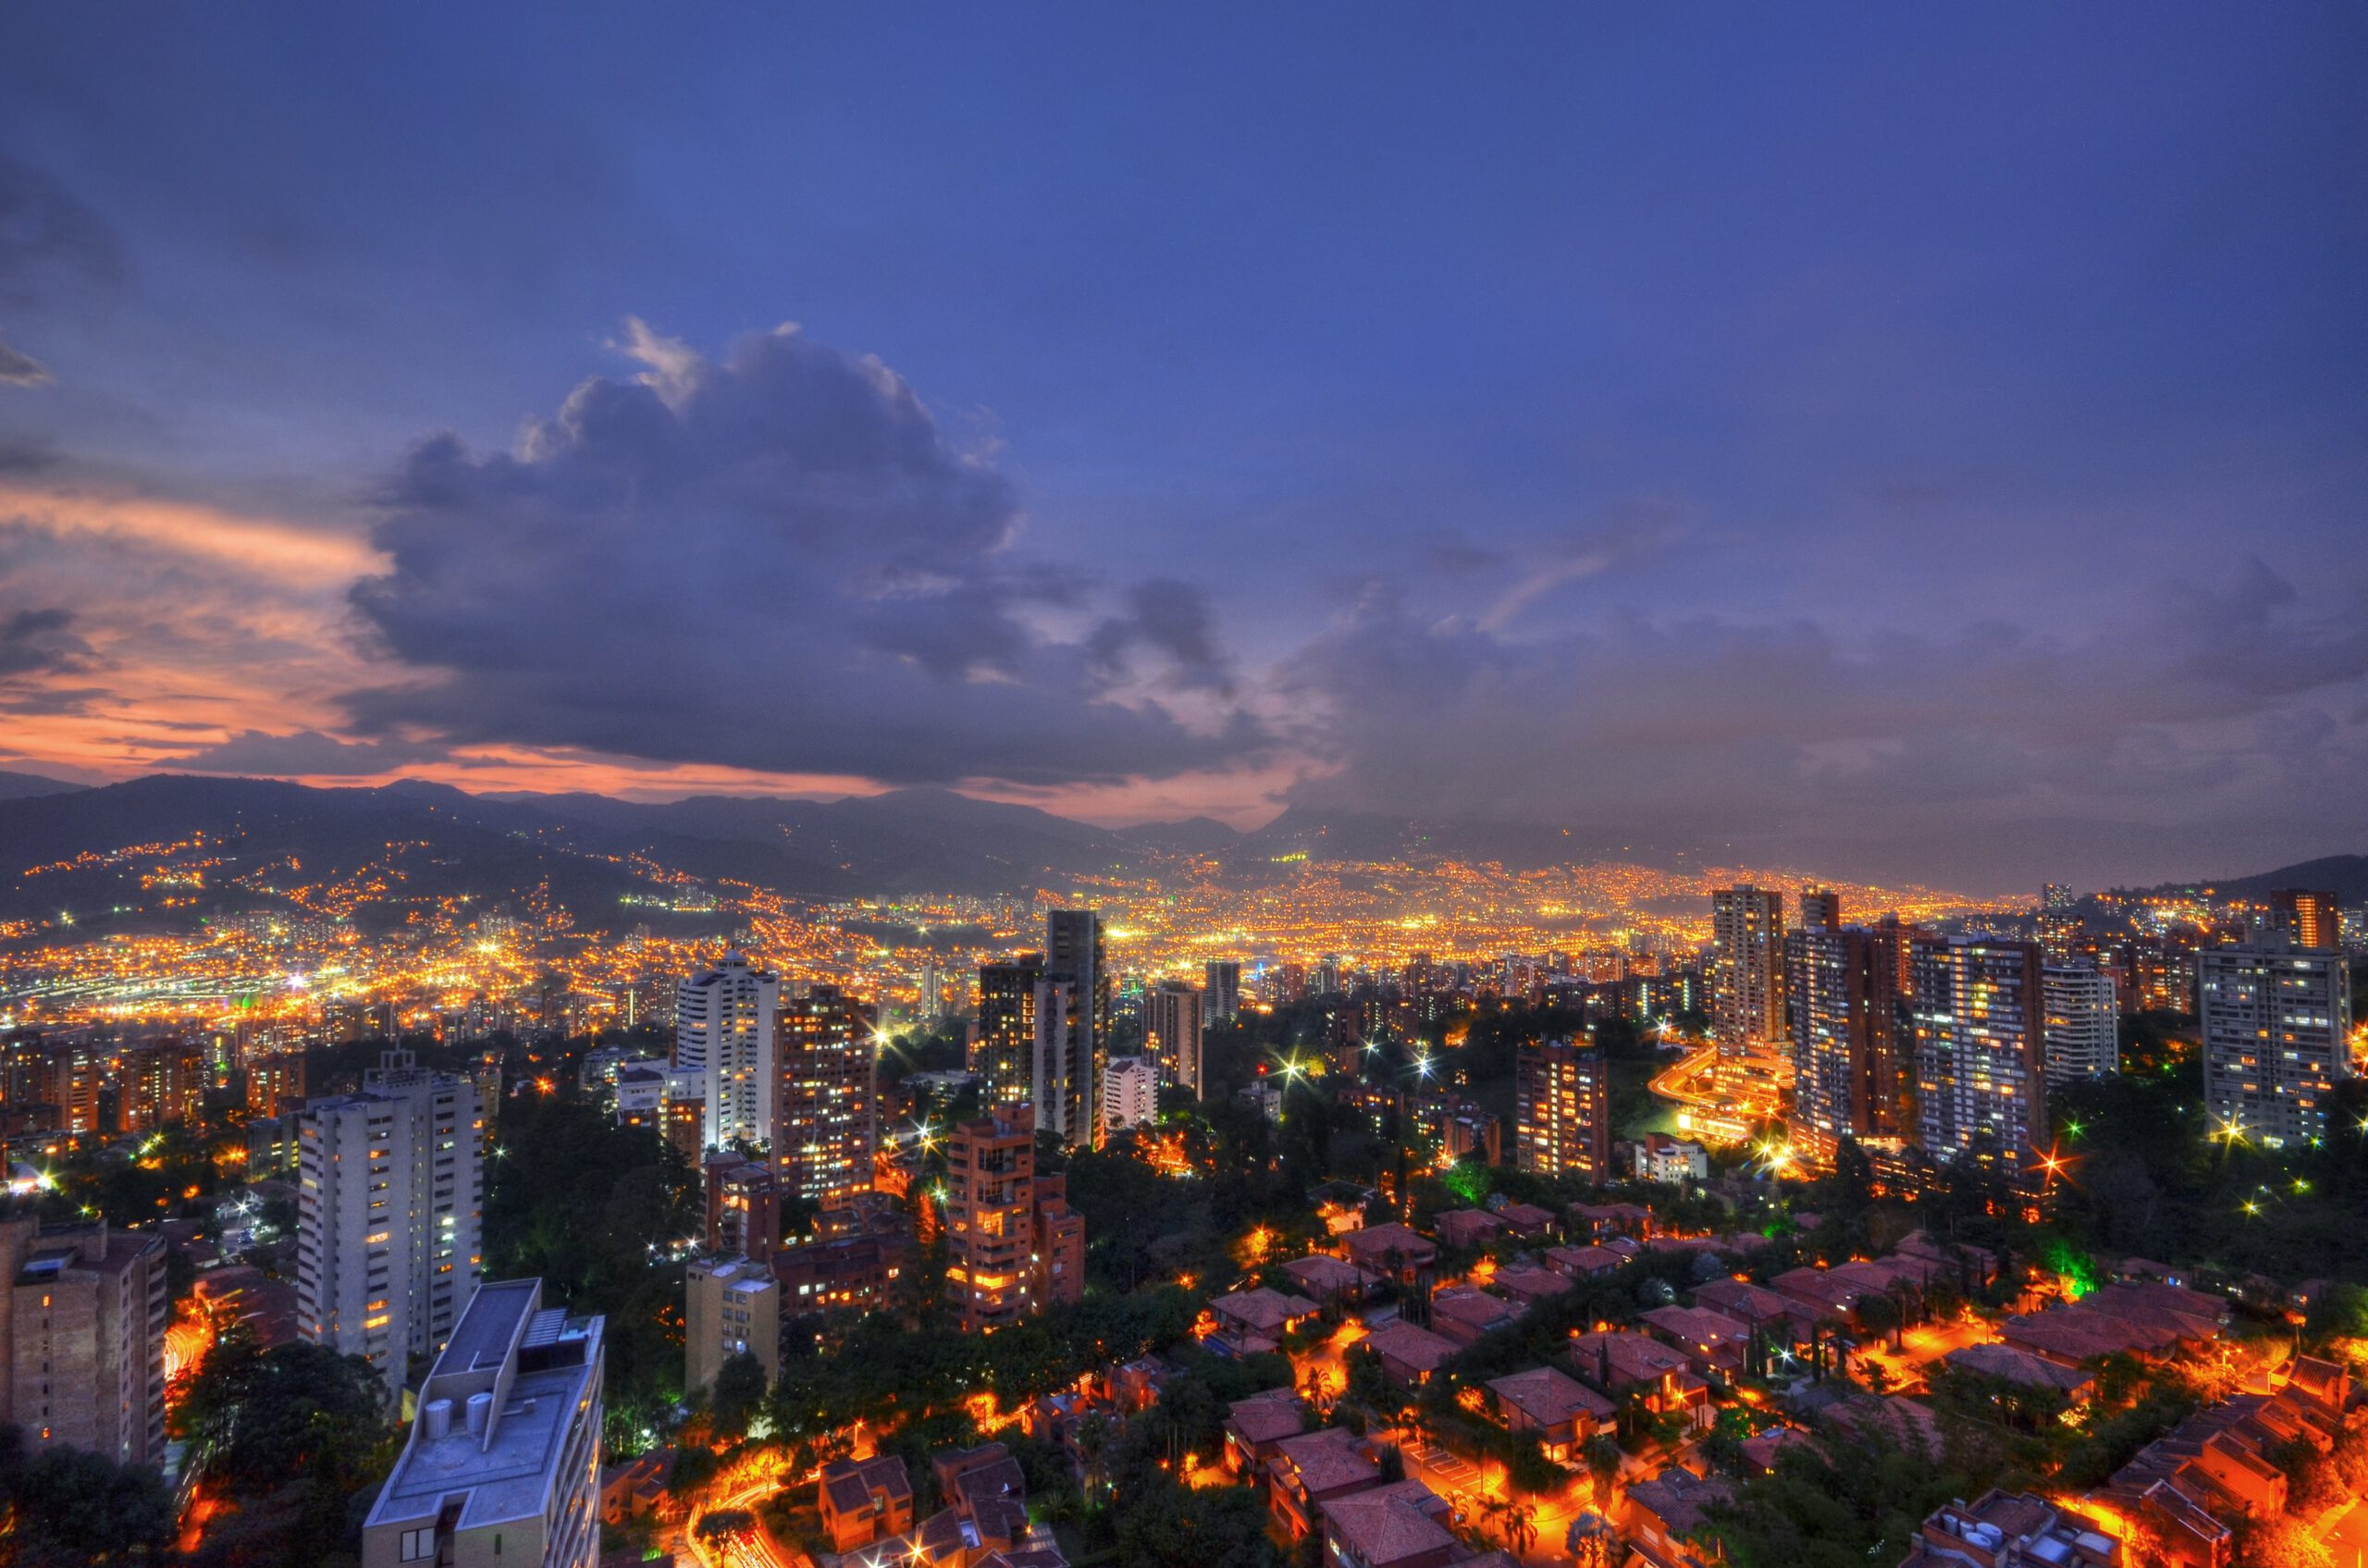 This makes Medellín an award-winning creative and smart city